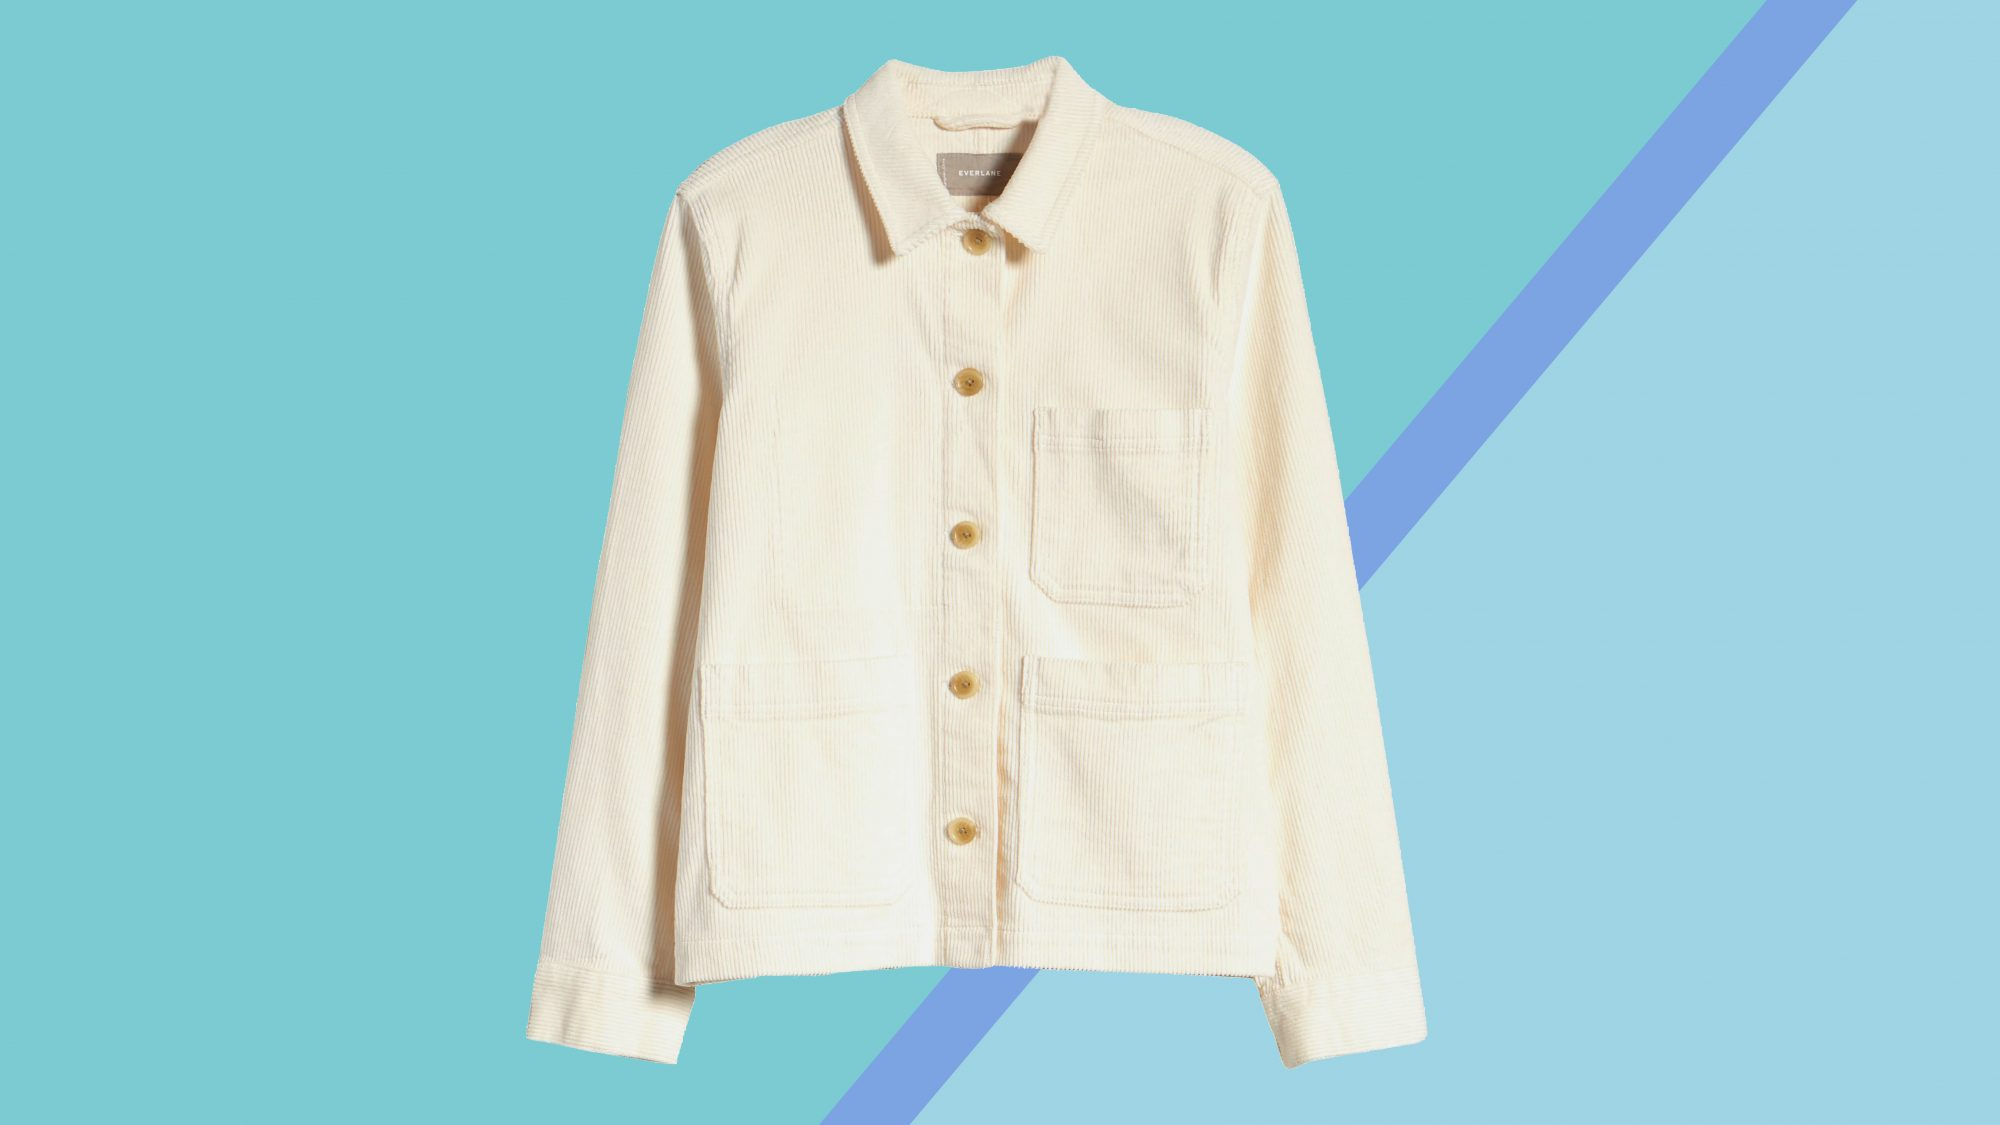 Everlane Jacket: 9 Cozy-Chic Corduroy Essentials You'll Live in This Season